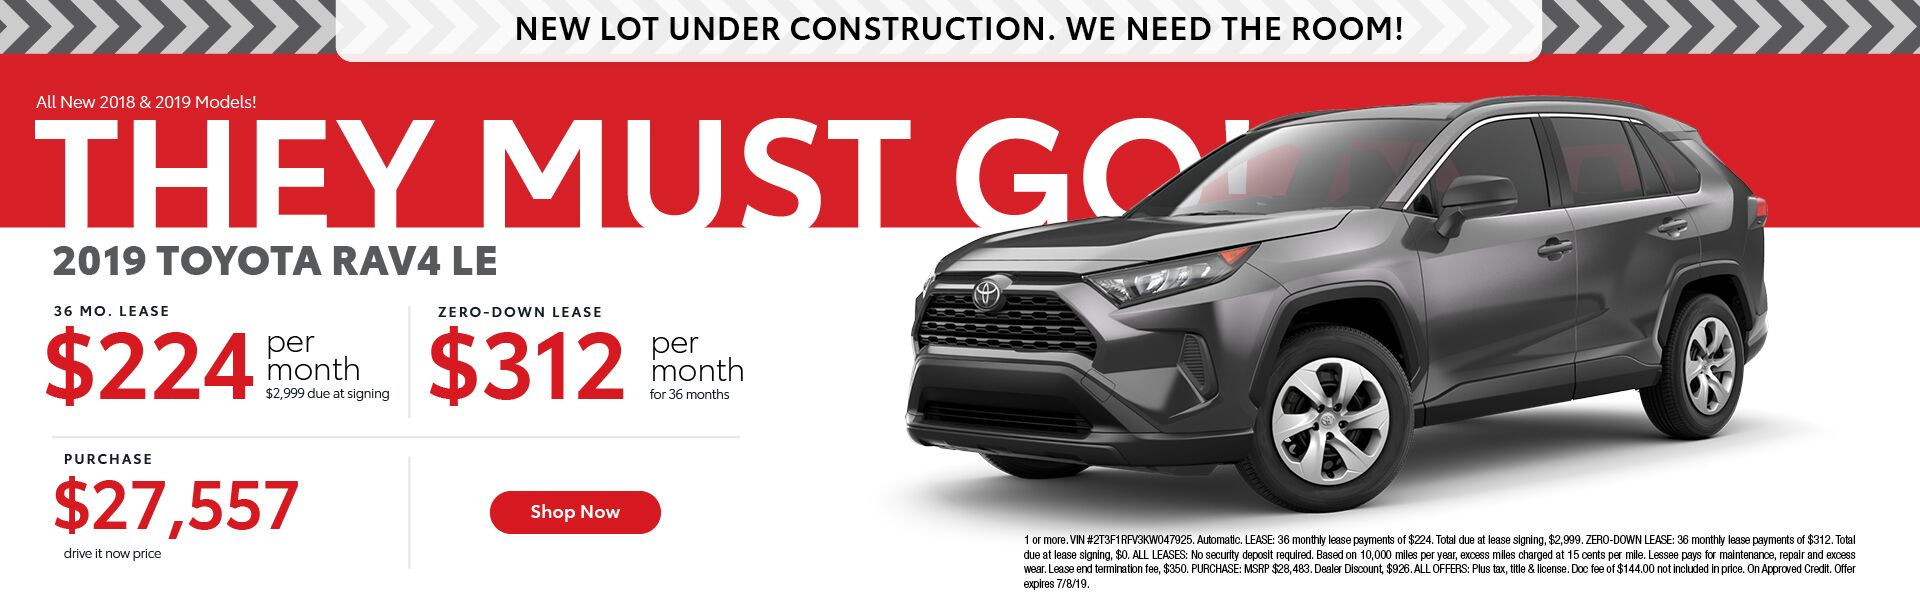 2019 Toyota RAV4 LE - 36 month lease for 224 per month with $2,999 due at signing - zero-down lease $312 per month for 36 months - purchase price $27,557